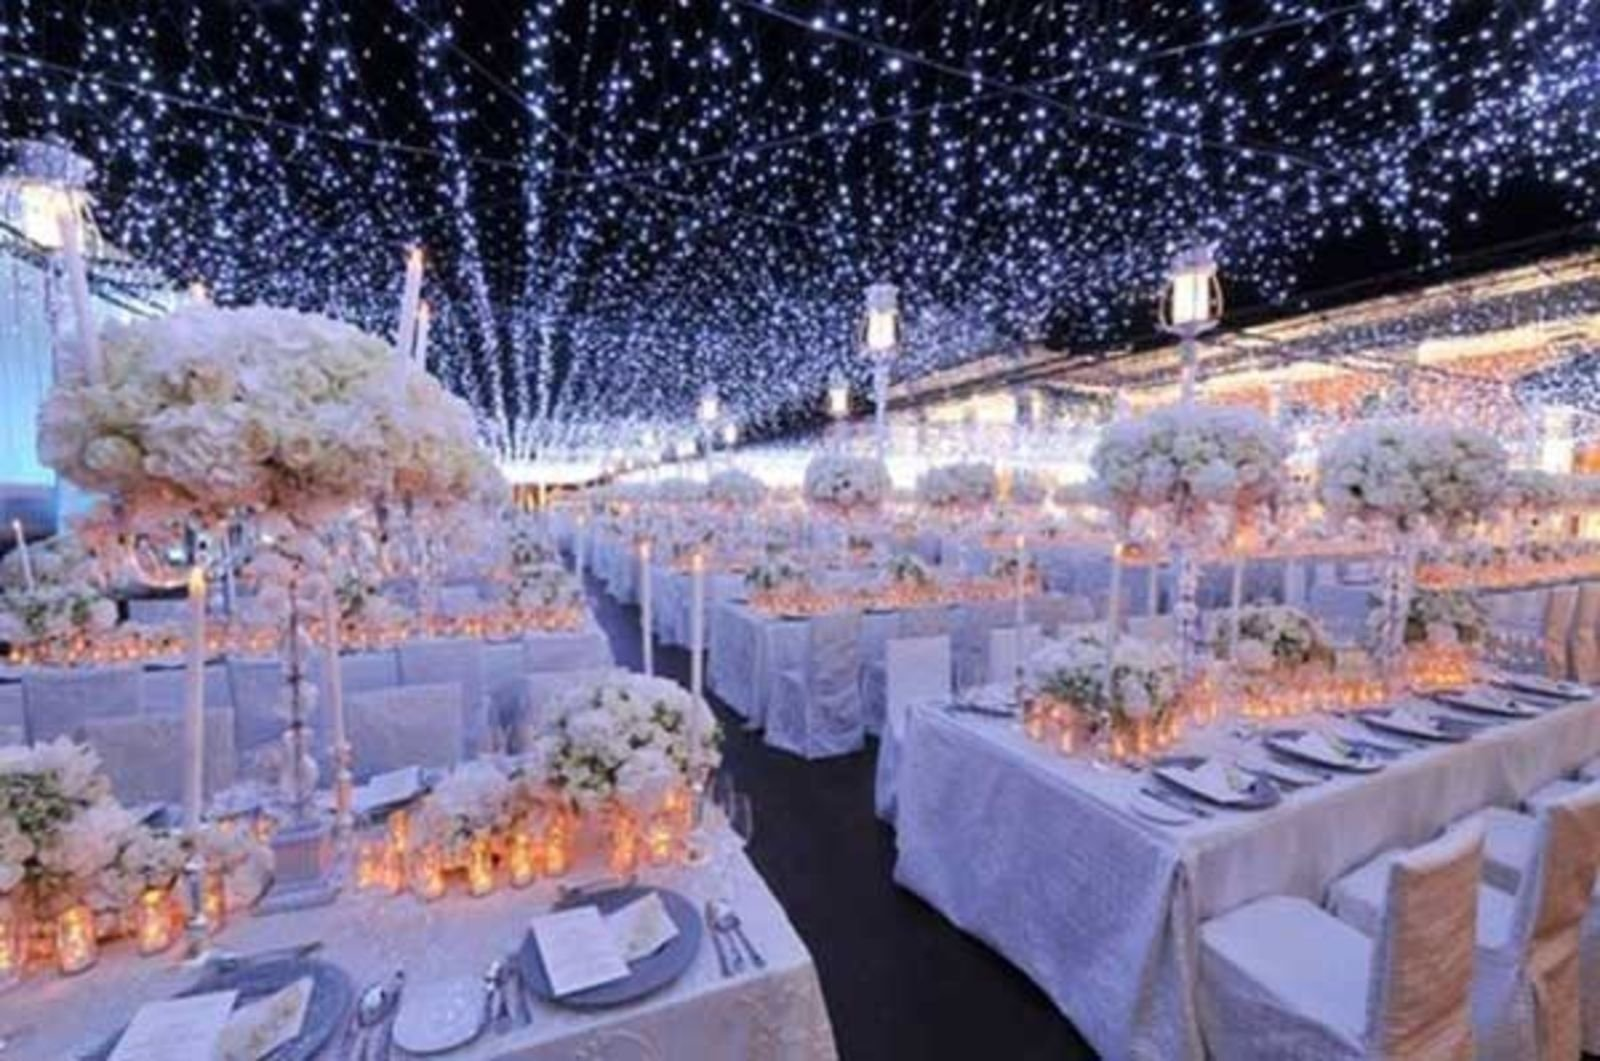 impressive ideas for wedding reception 1000 reception ideas on fair